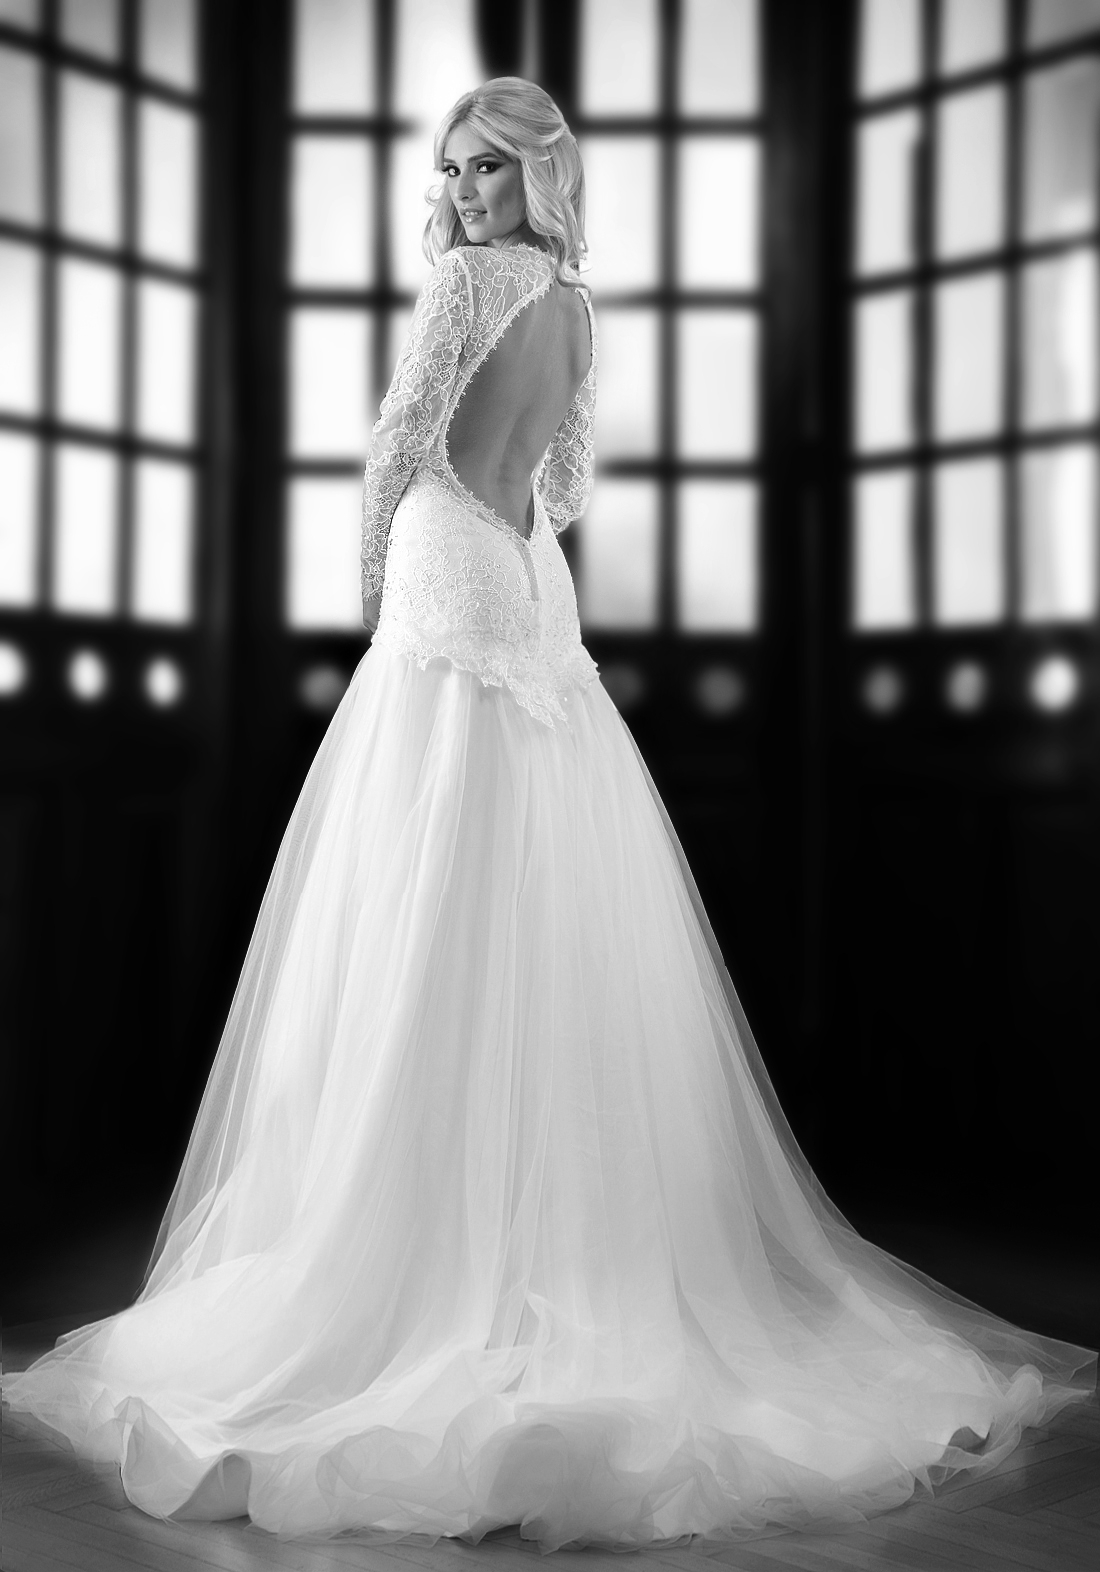 bien-savvy-wedding-dresses-2014-collection-29-01232014